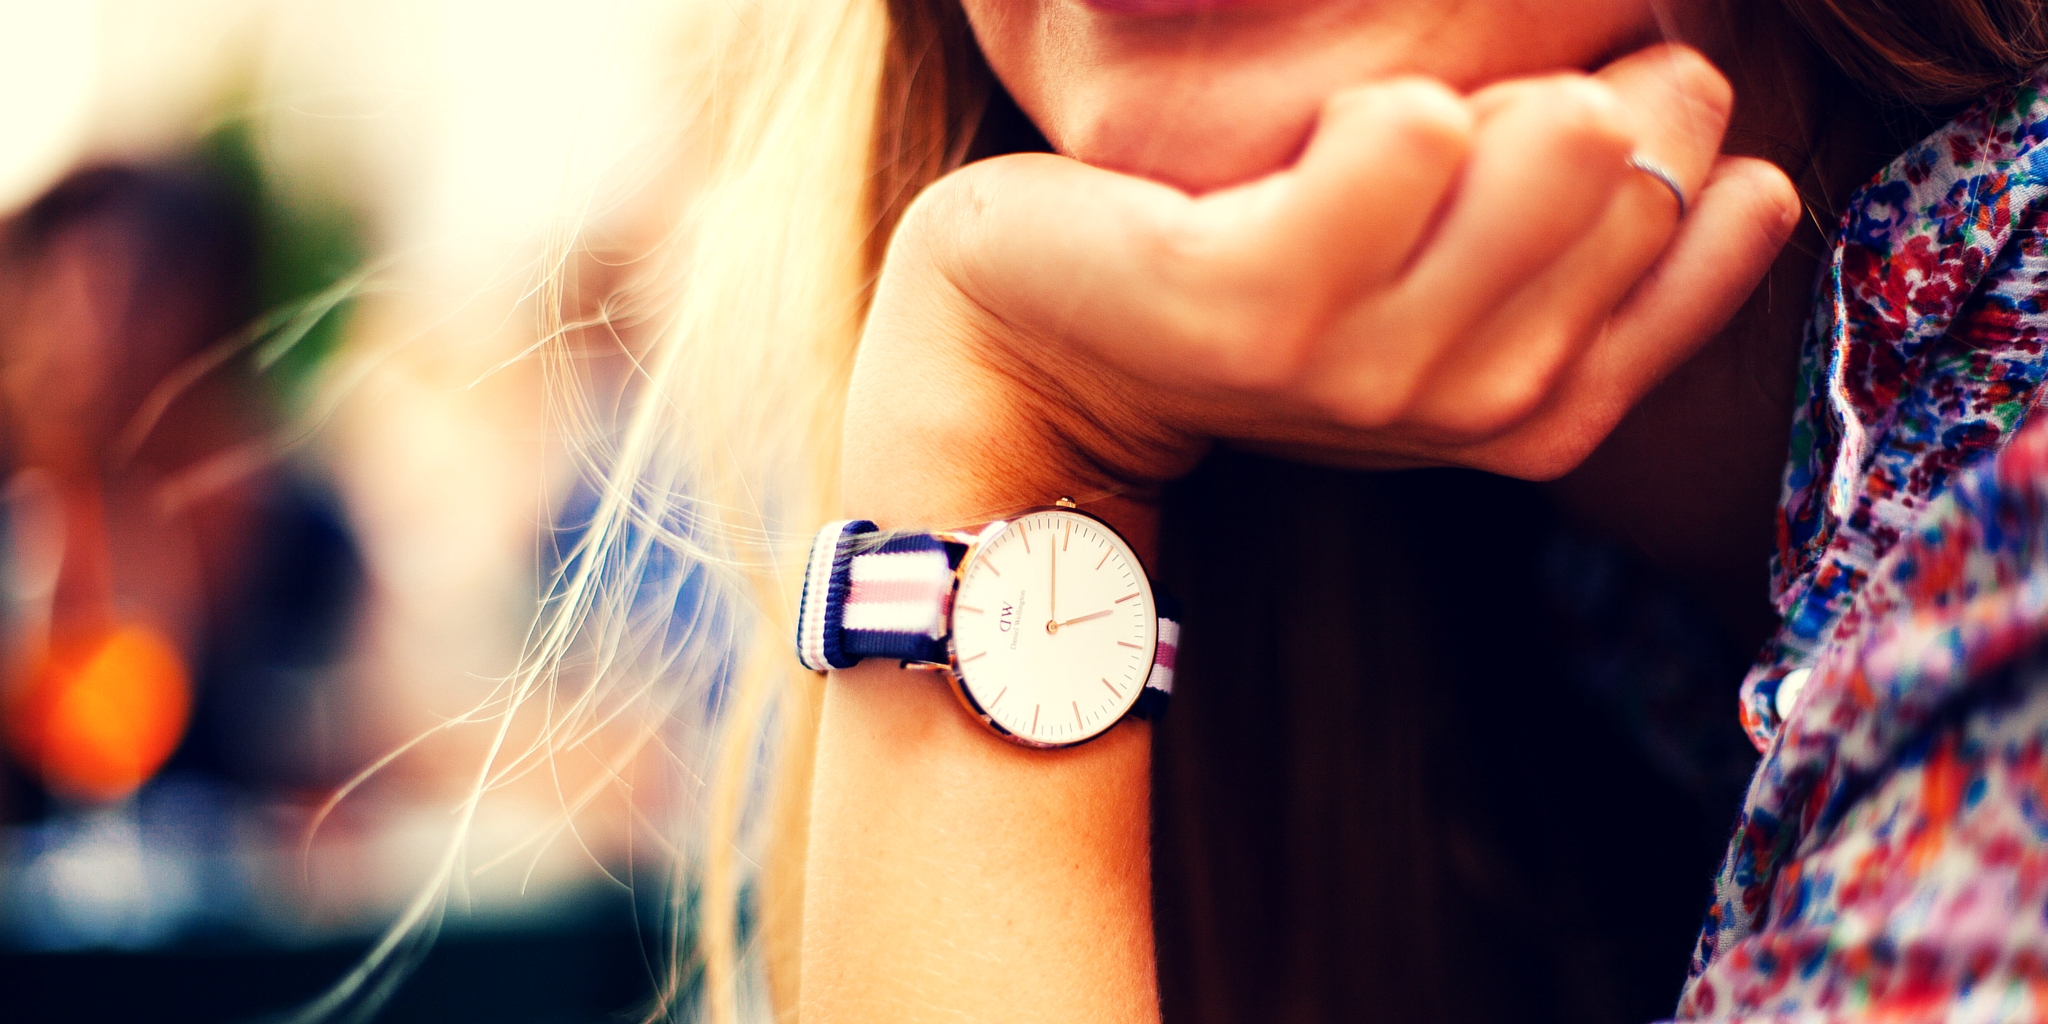 Woman resting head on hand, wearing watch, sitting in the sunshine